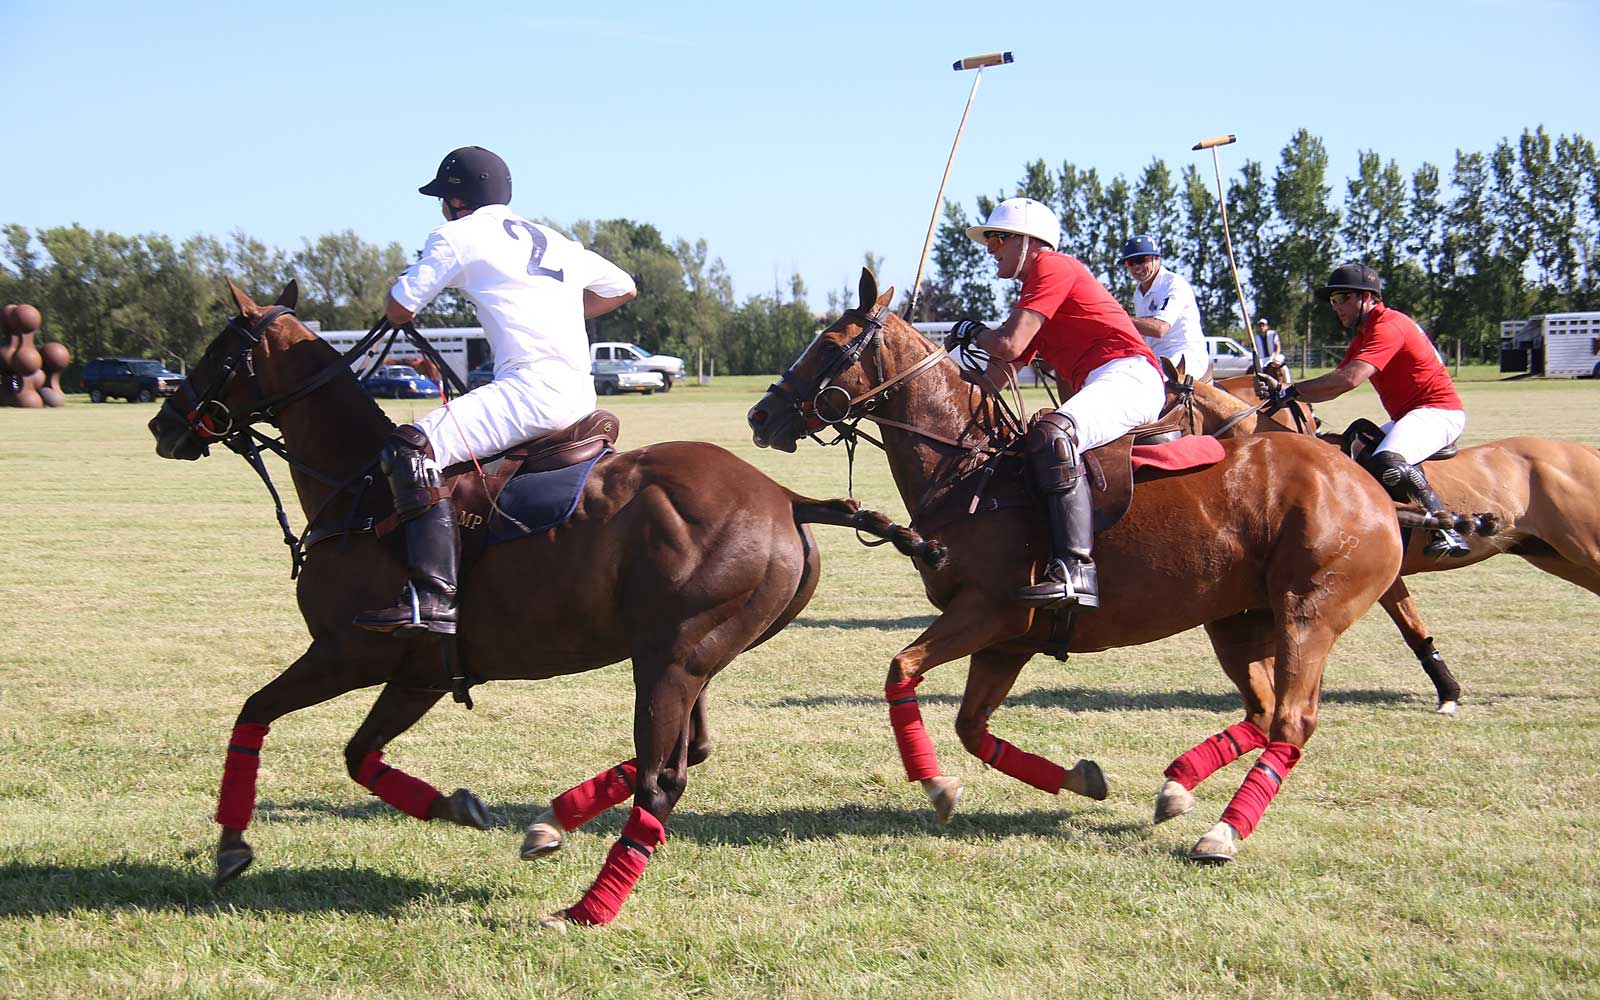 Southampton Polo Club on June 24, 2017 in Southampton, New York